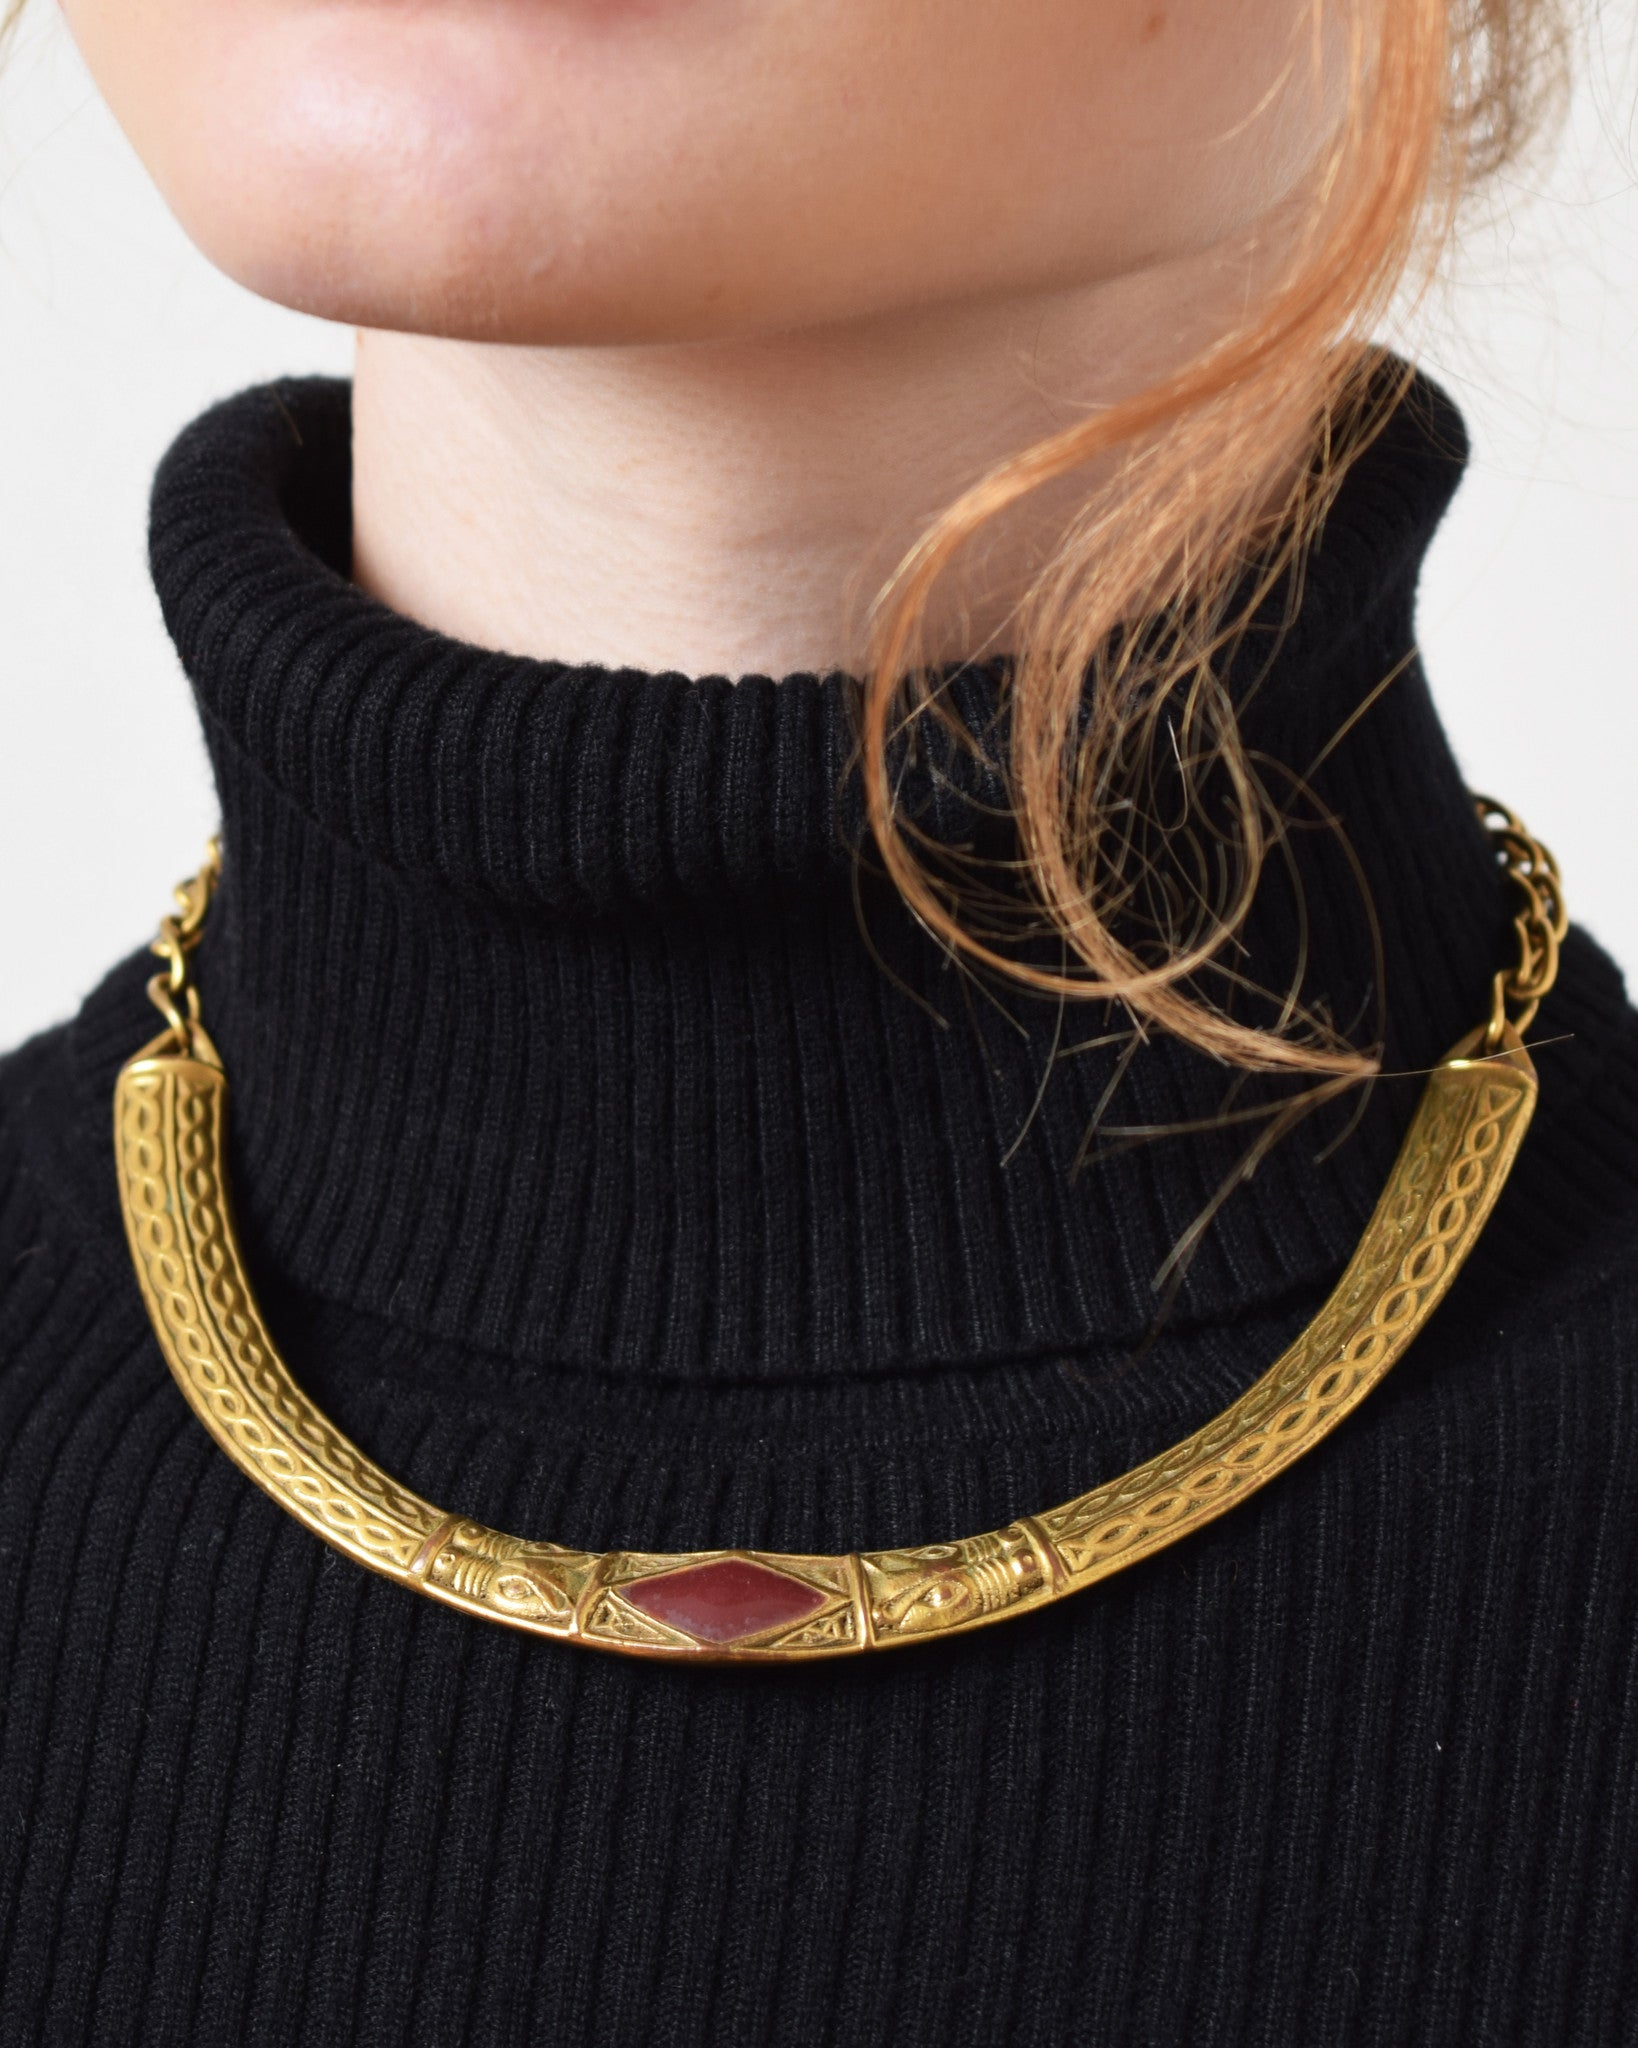 Vintage 1970s Collar Necklace